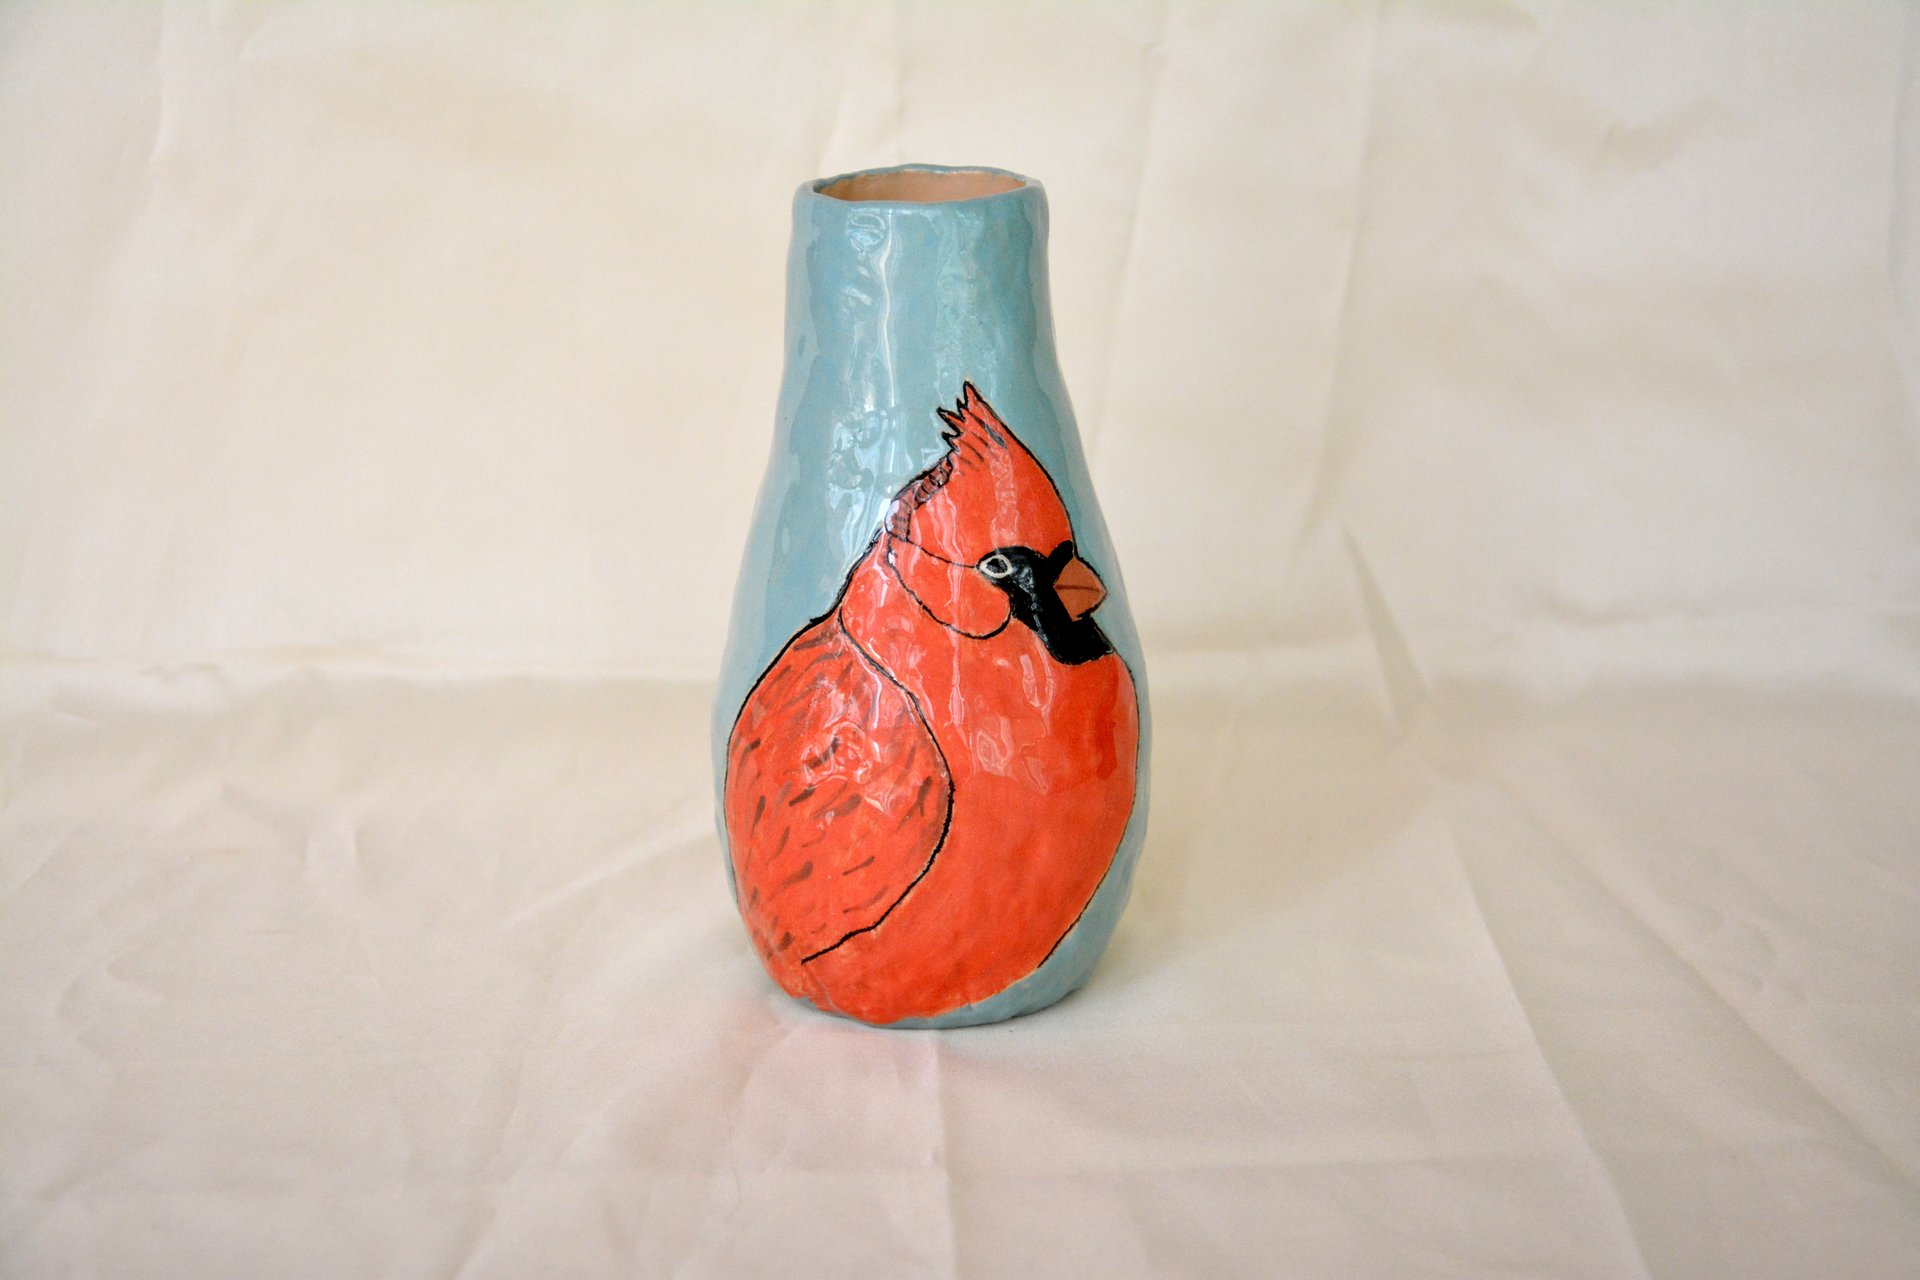 Hand painted vase (with a picture) «Birdie Cardinal», height - 18 cm. Photo 16.